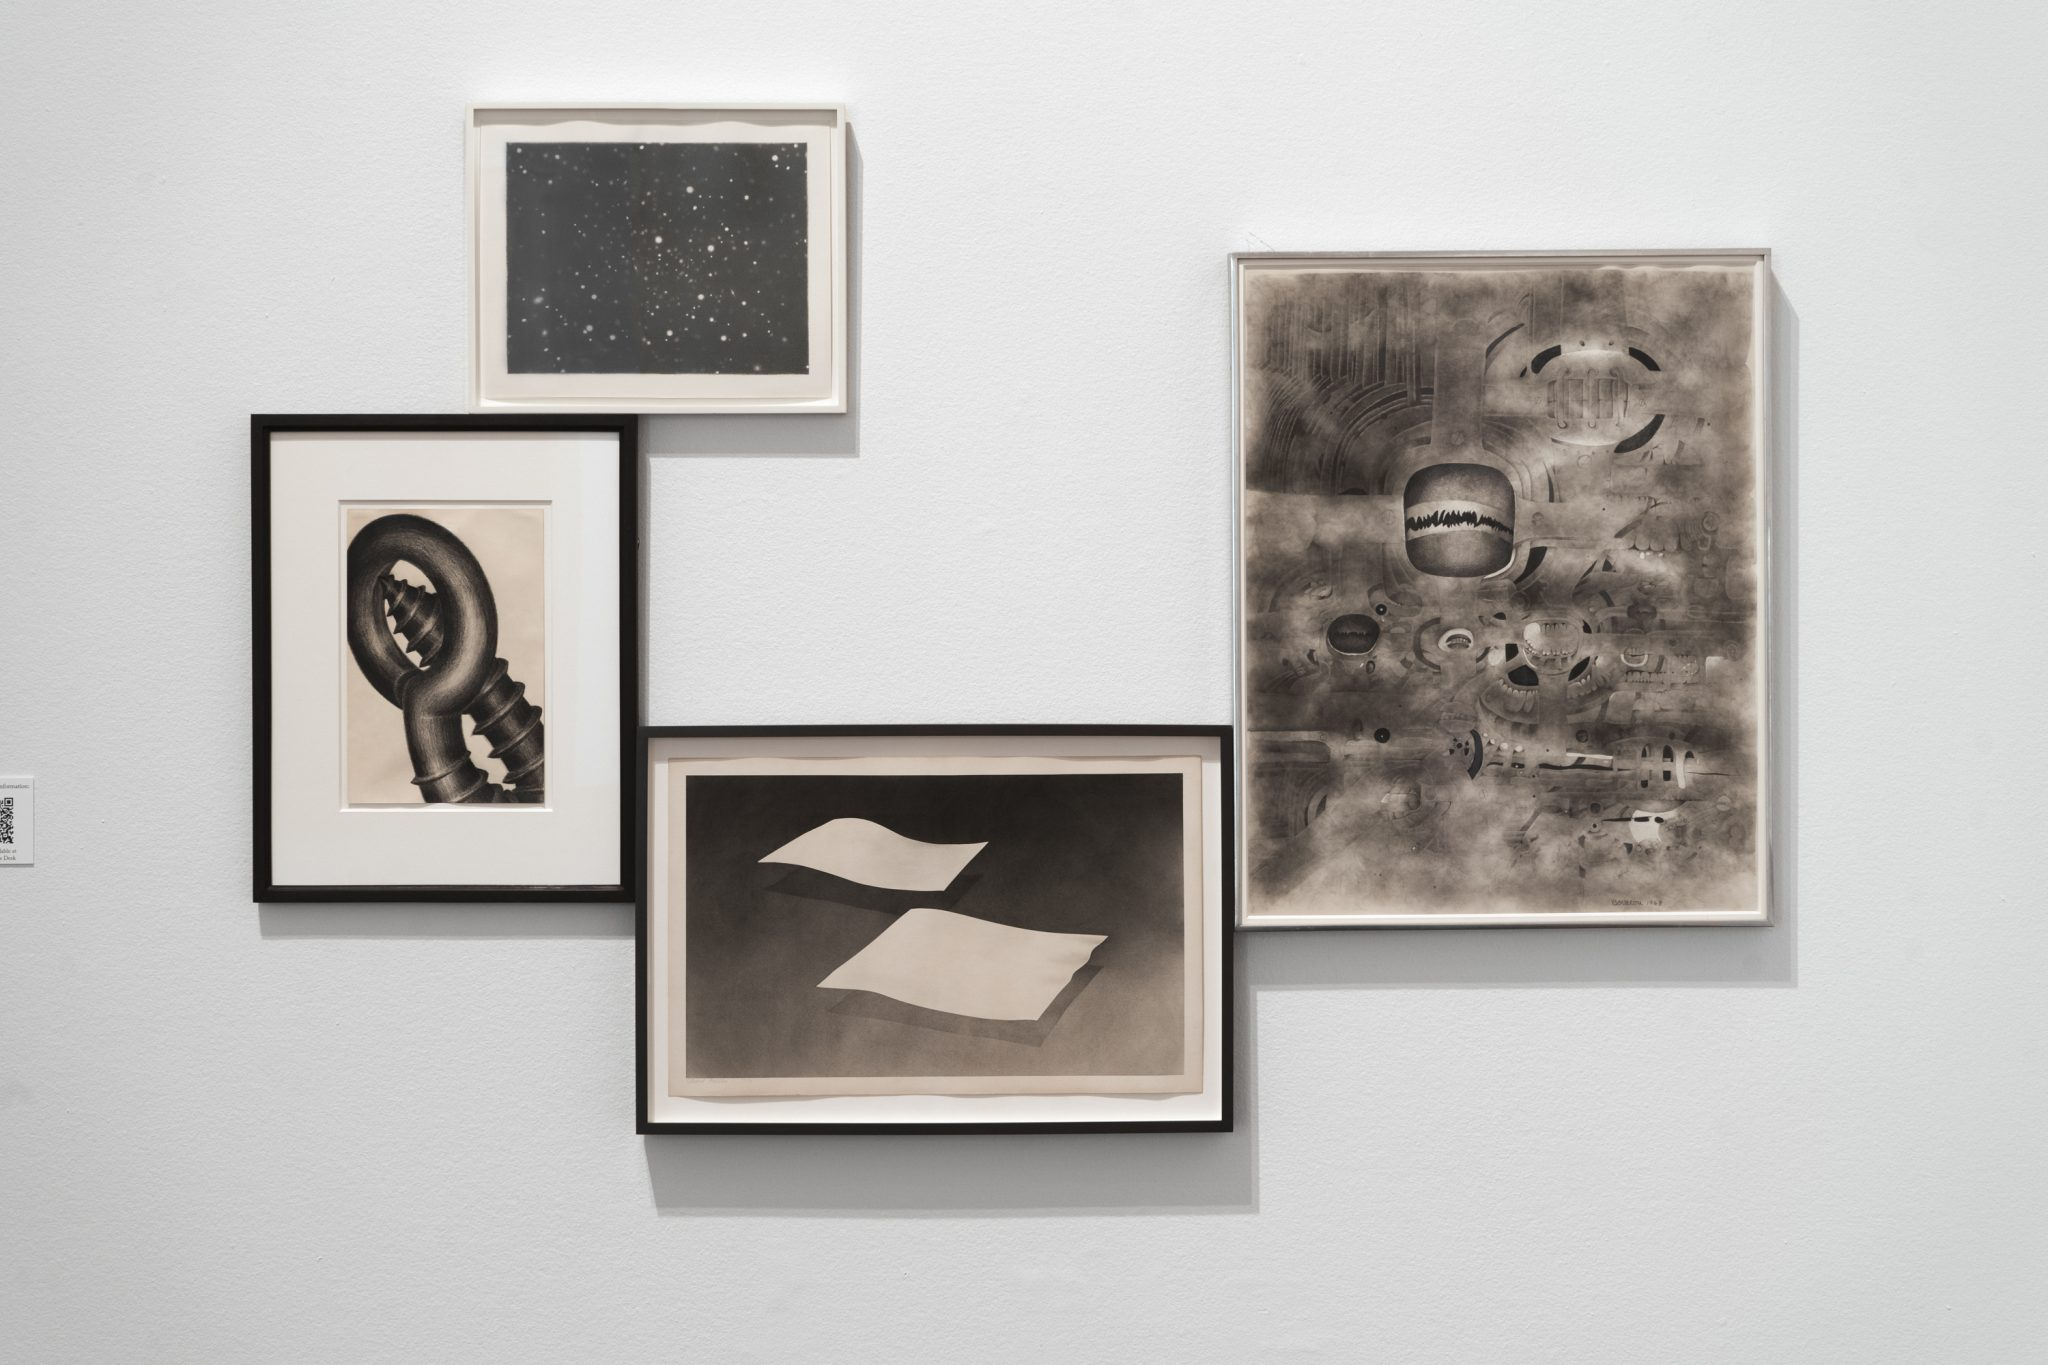 """Installation view of """"Drawn: From the Collection of Jack Shear,"""" Blanton Museum of Art, The University of Texas, March 27, 2020–August 22, 2021"""